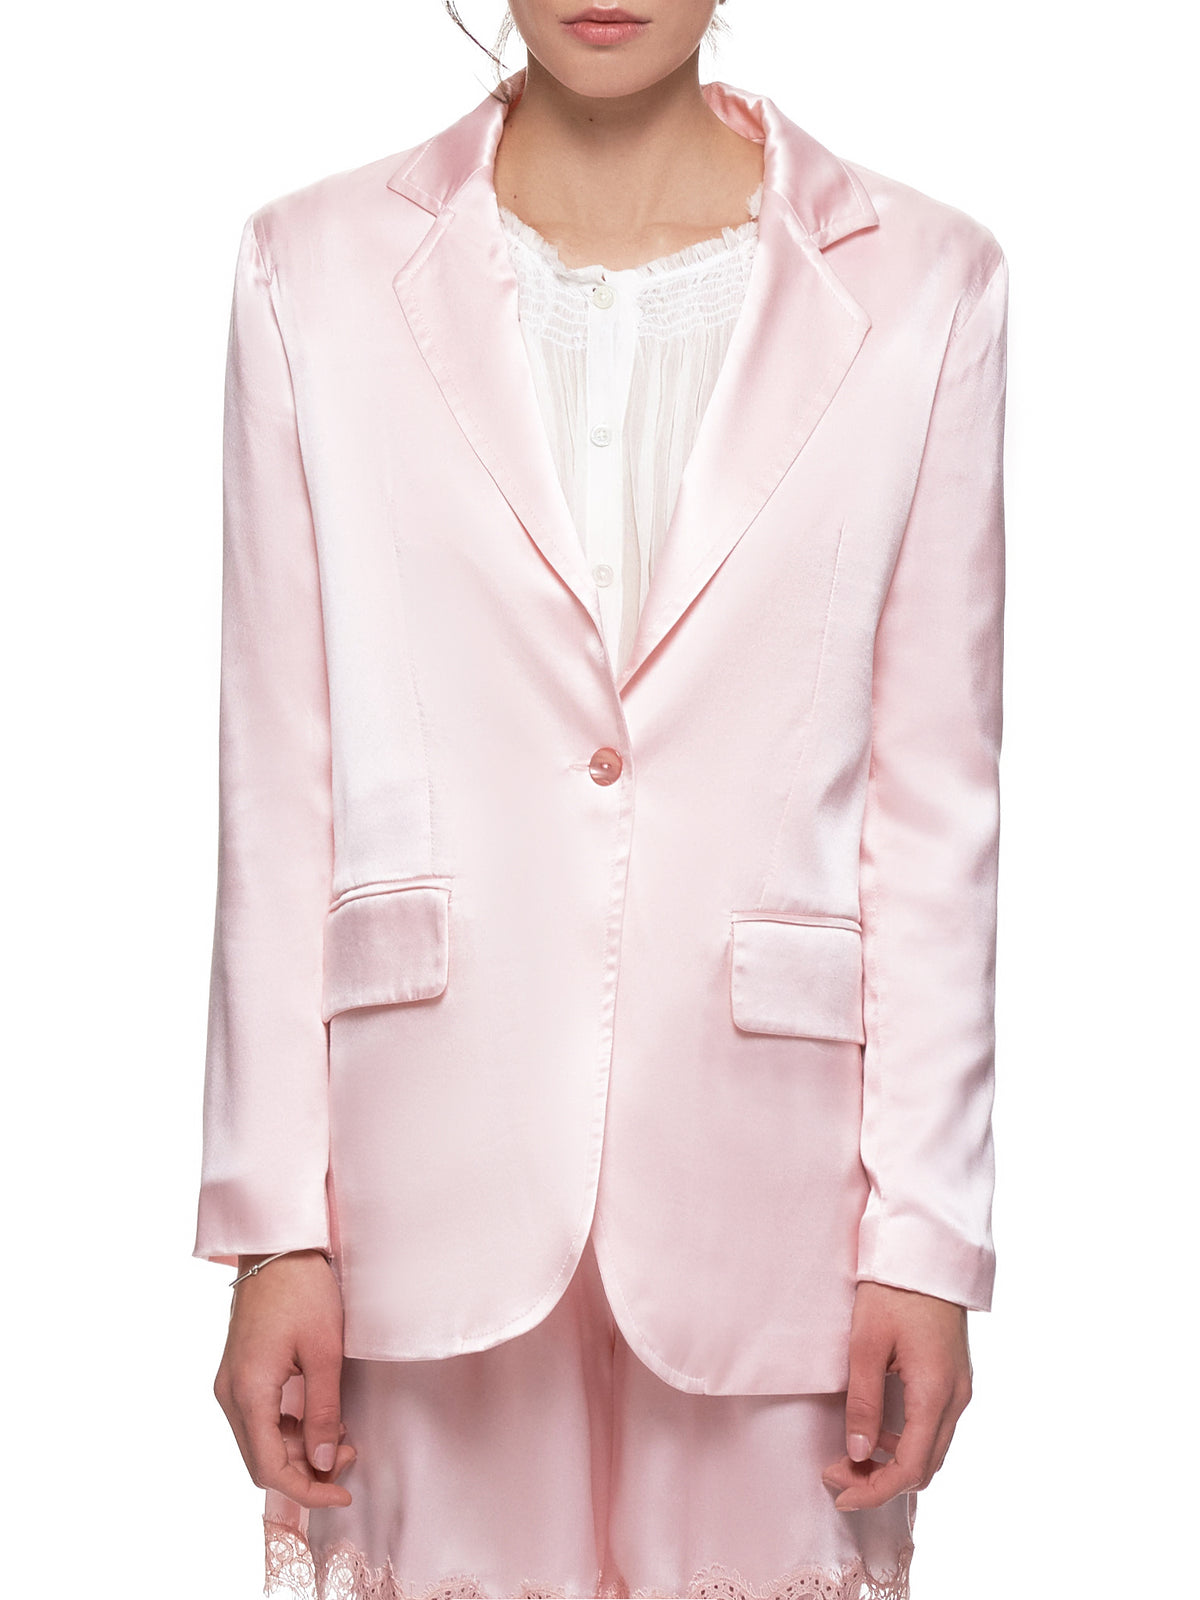 'Second Skin Blazer' (24-SECOND-SKIN-PINK)